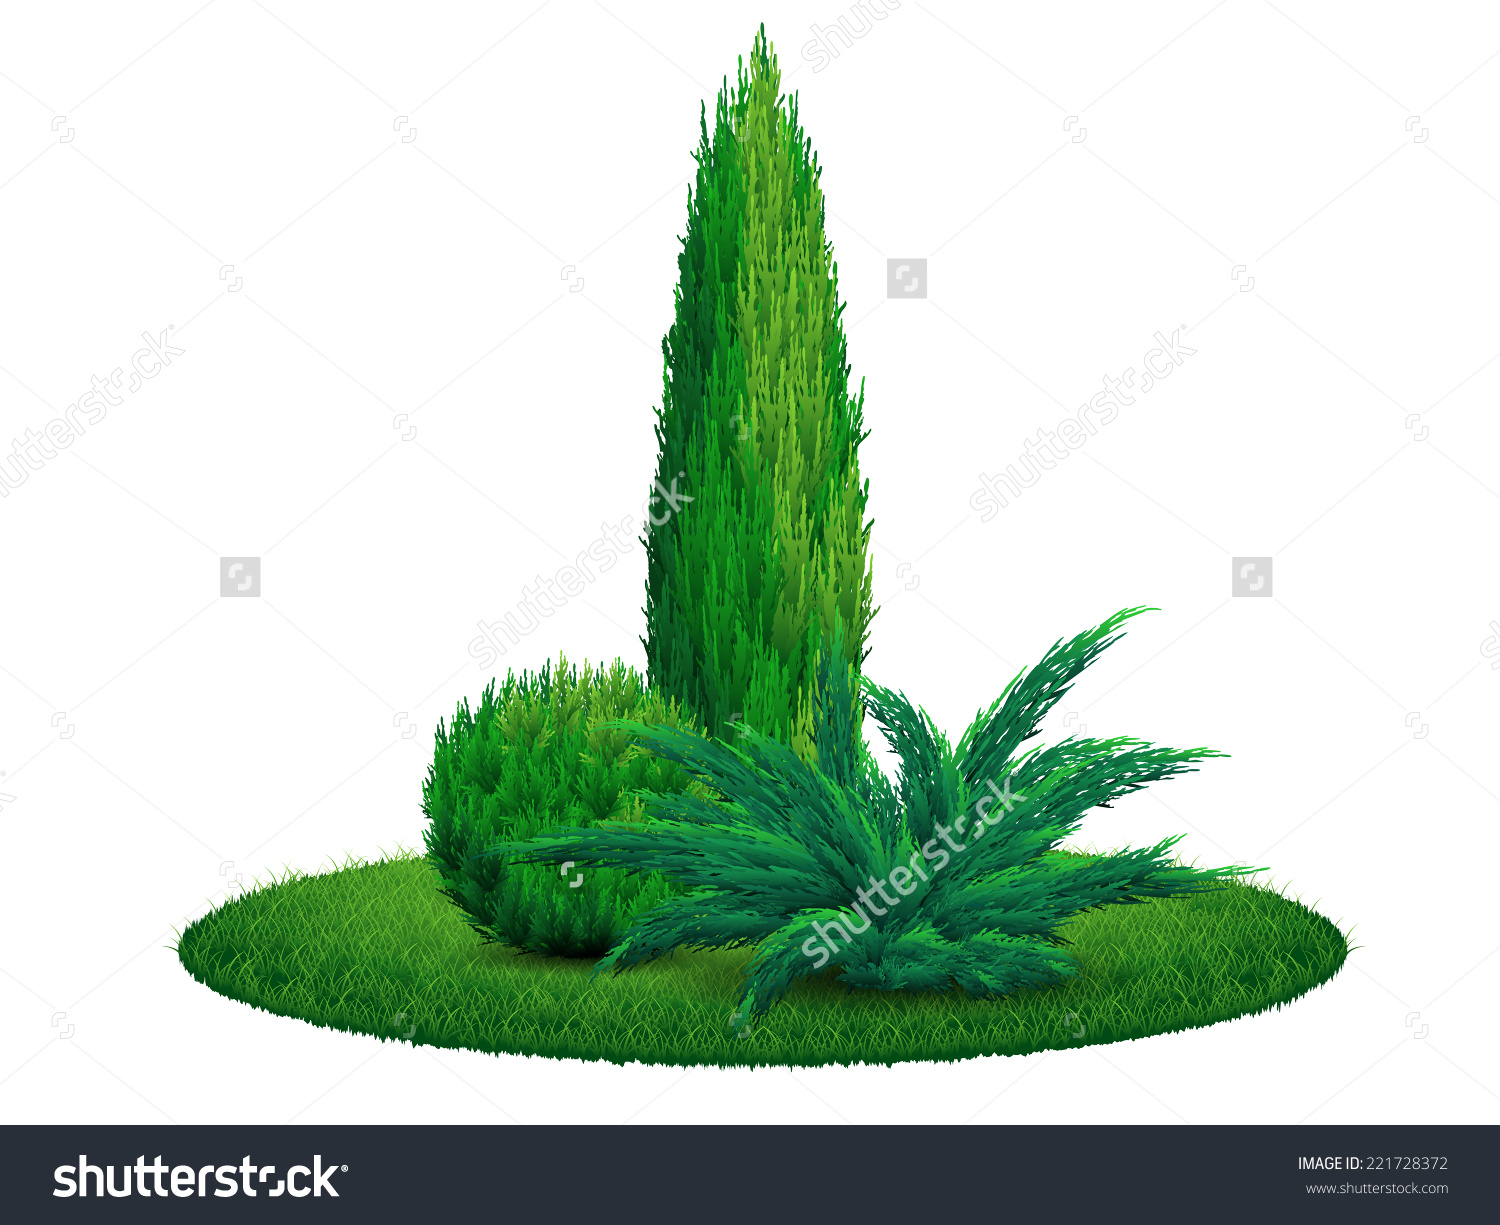 Thuja Tree Juniper Bush On The Grass. Vector Illustration Eps 10.